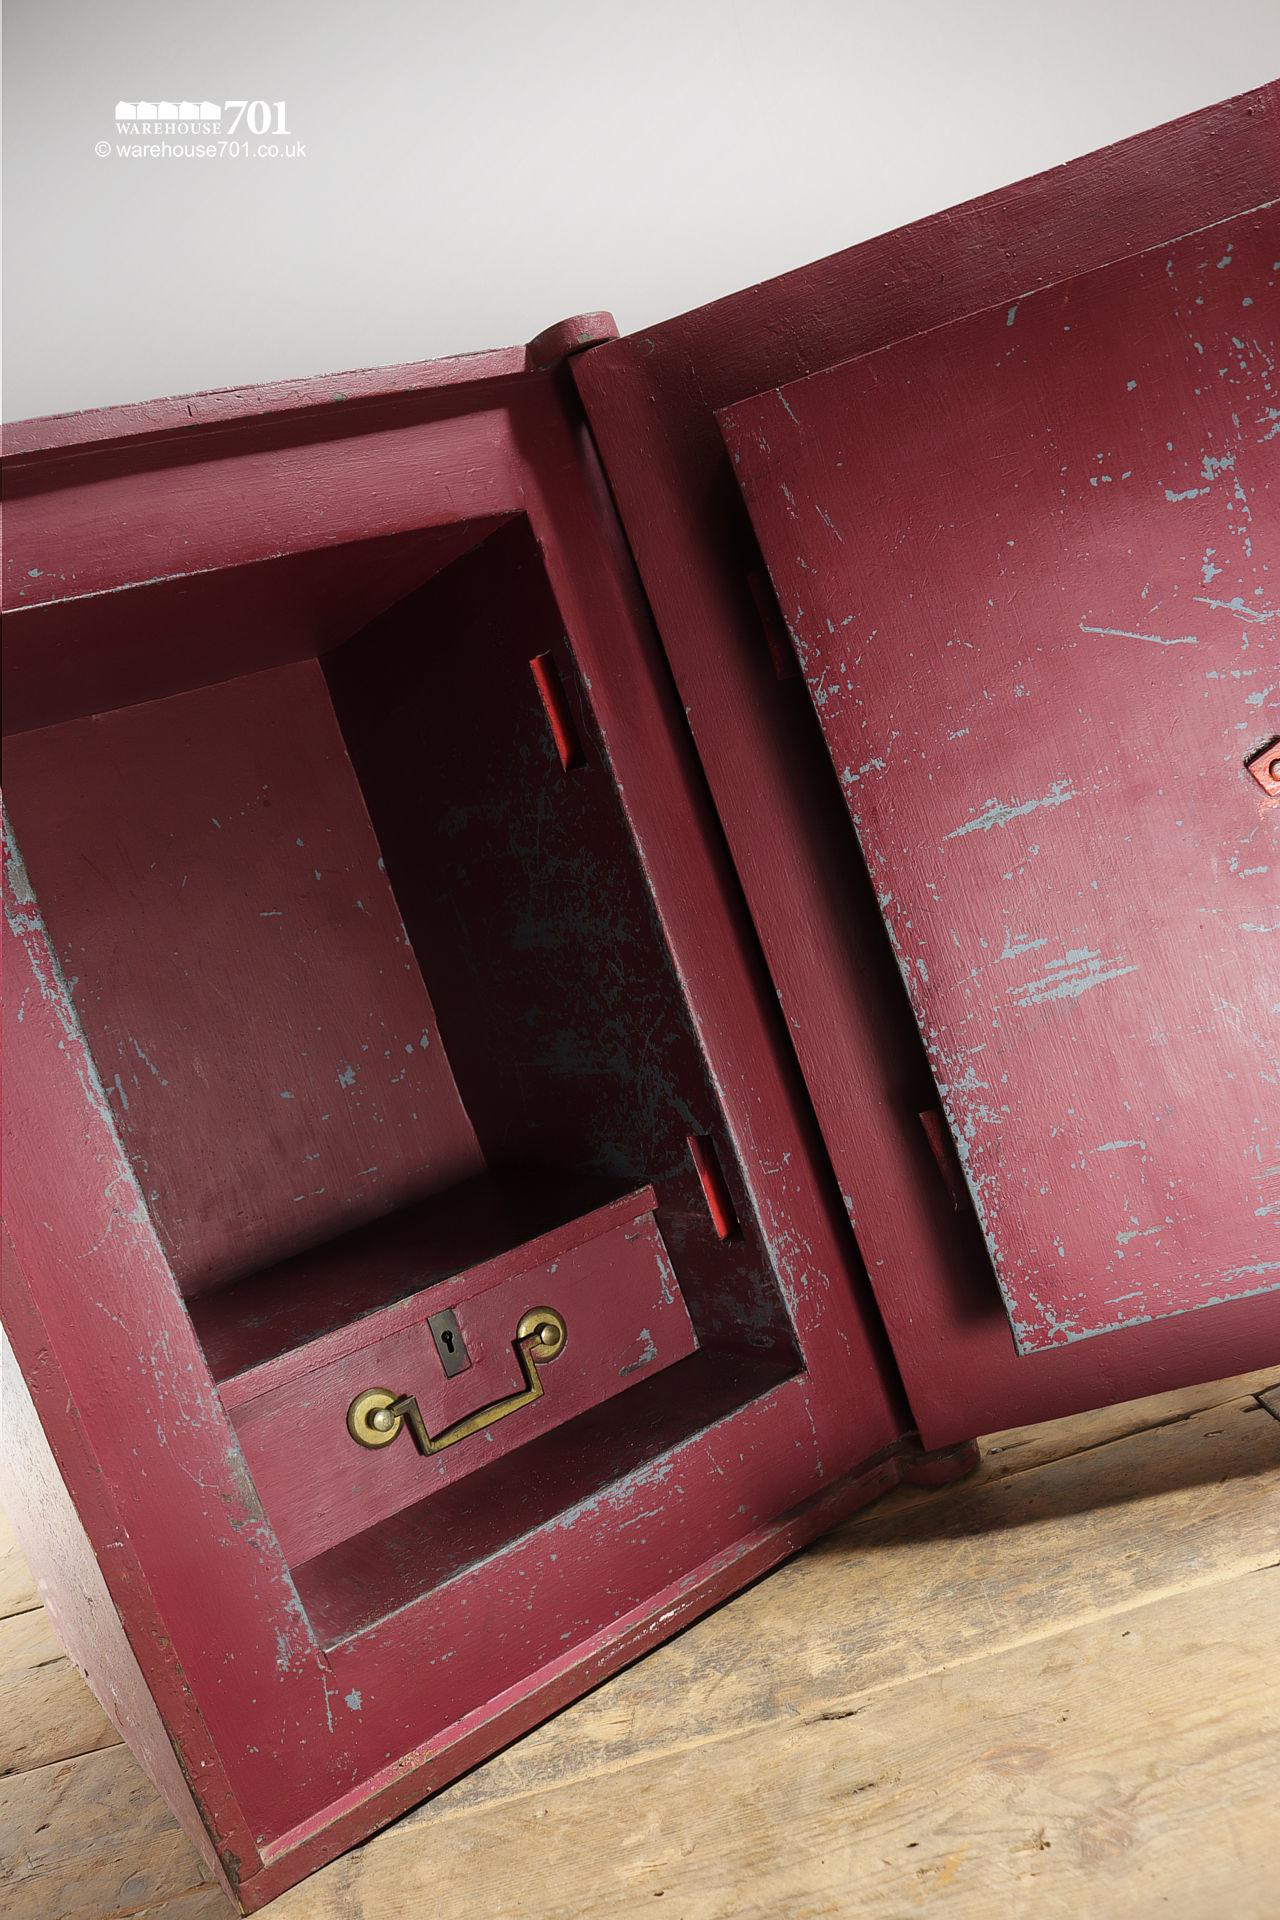 Salvaged Vintage Burgundy Red and Brass Safe by B.Tebbit of Birmingham #4